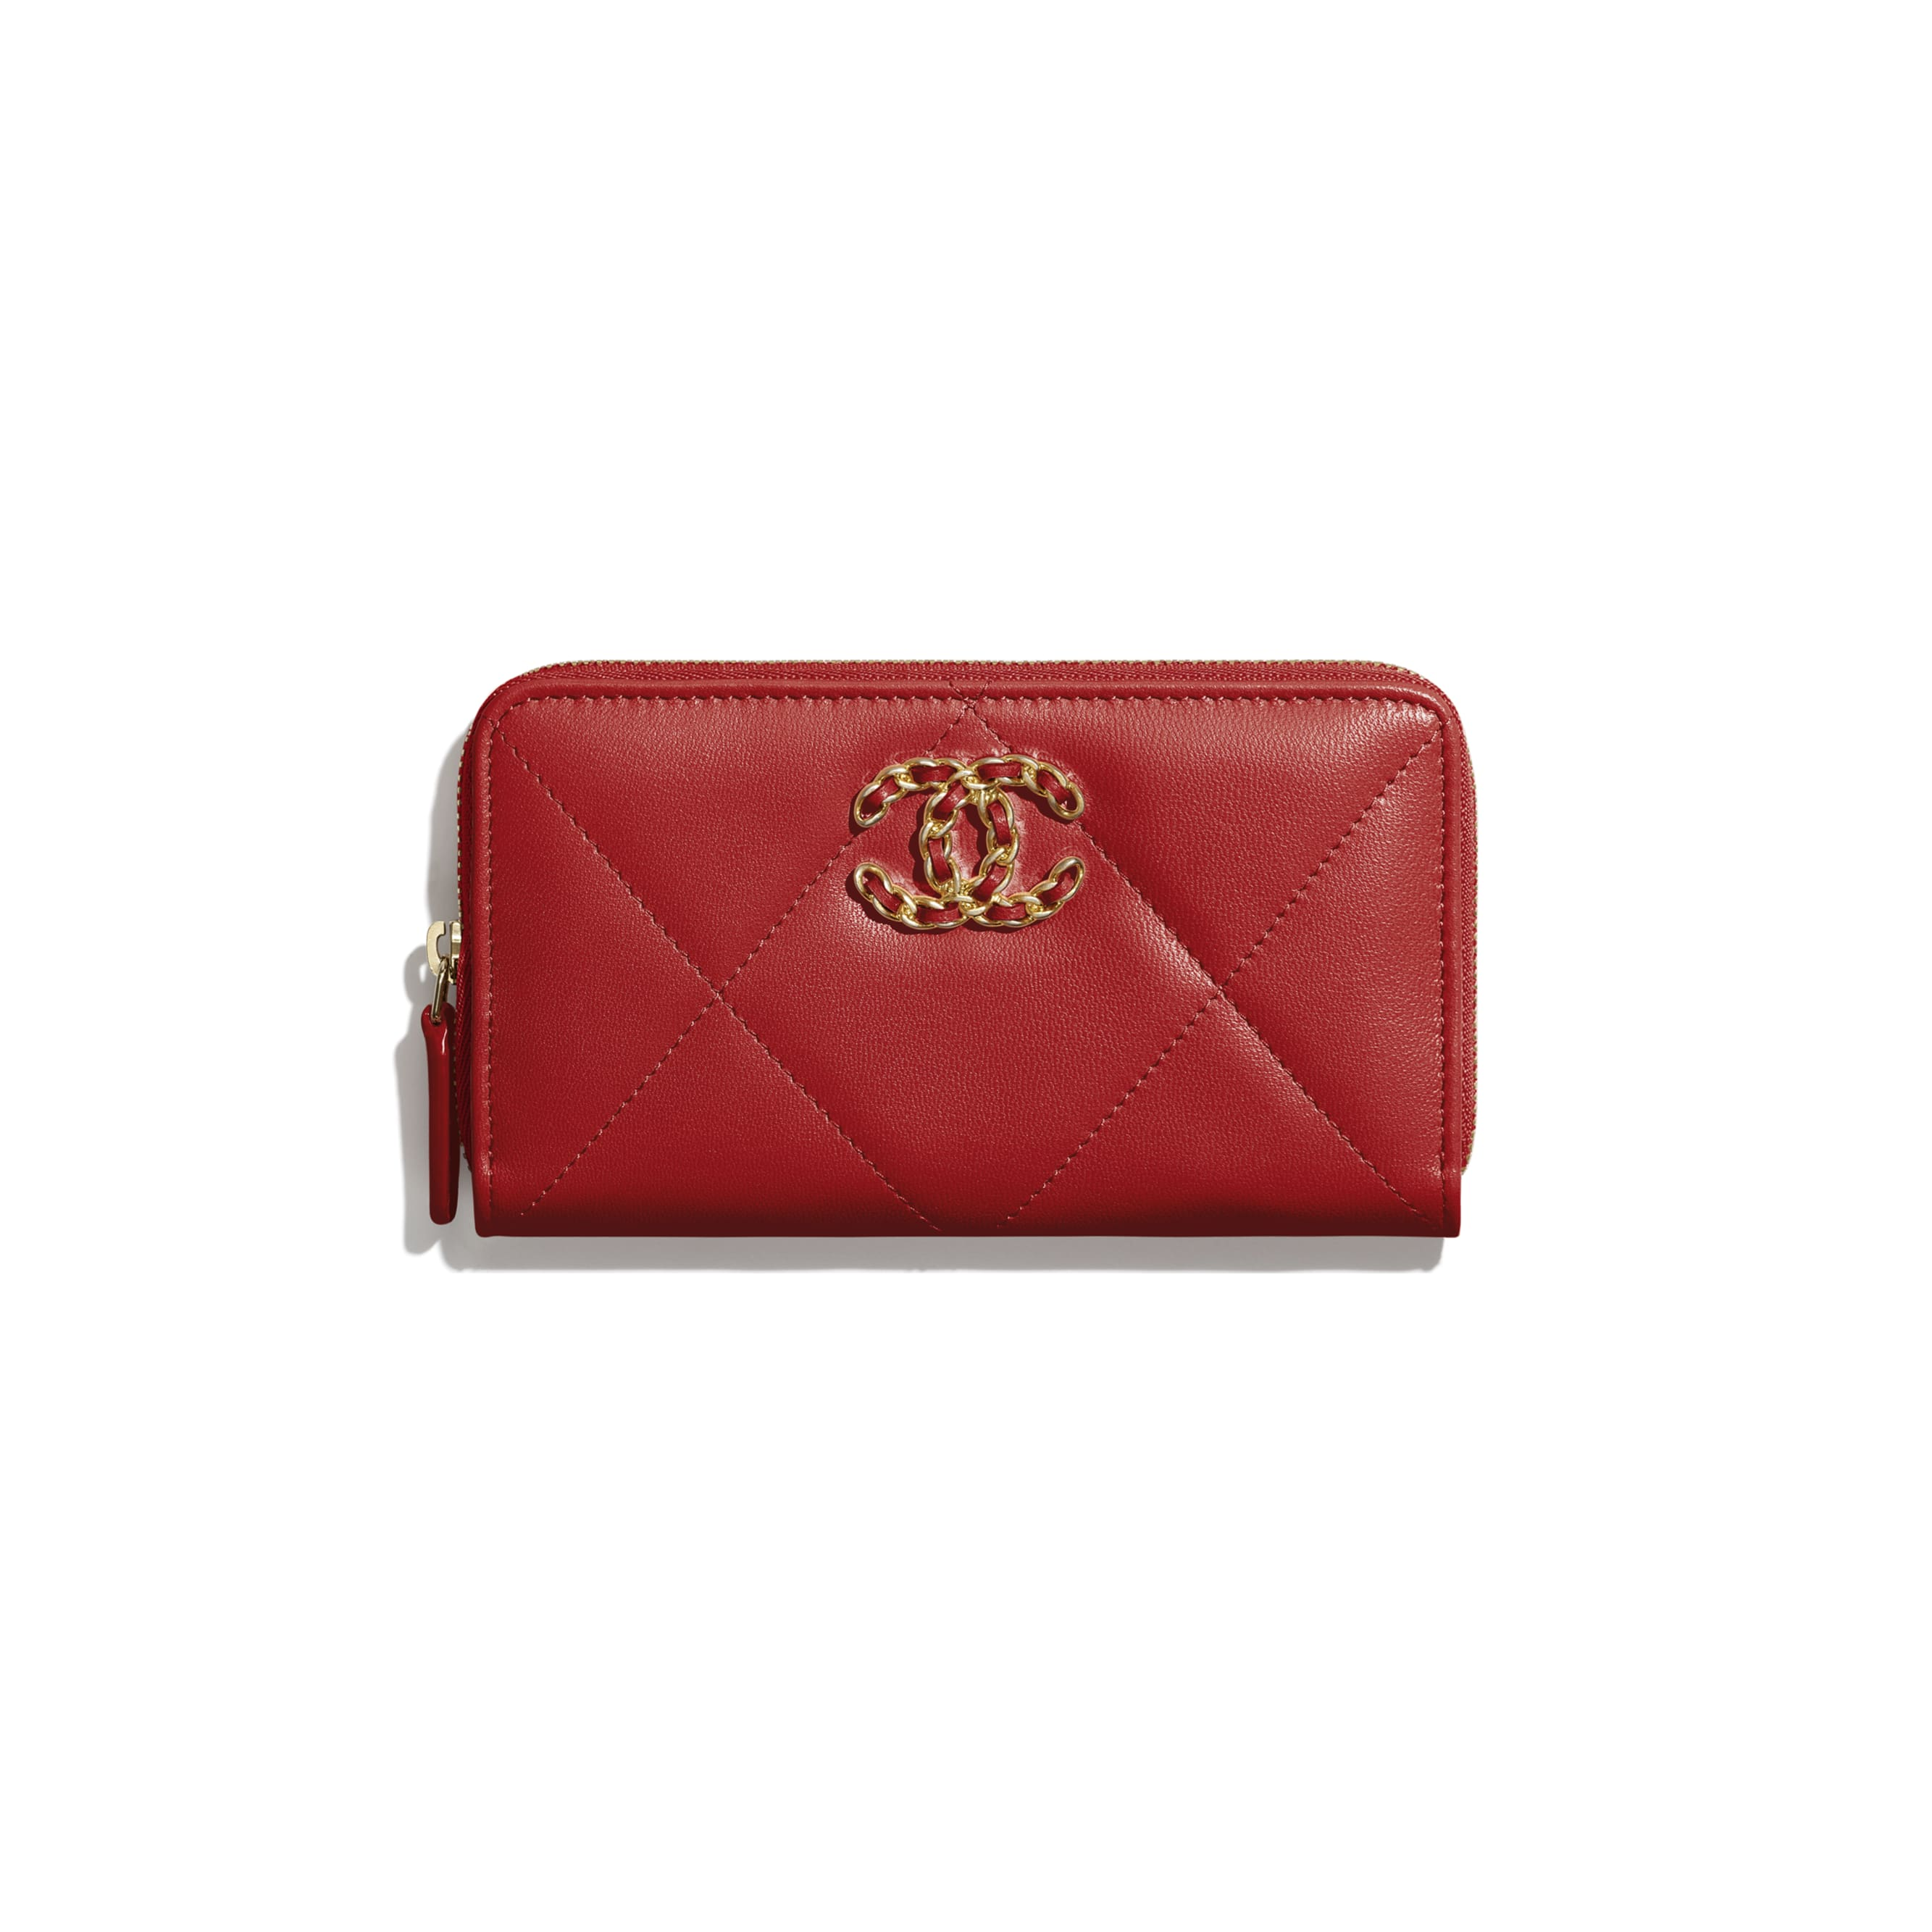 CHANEL 19 Zipped Wallet - Red - Shiny Goatskin, Gold-Tone, Silver-Tone & Ruthenium-Finish Metal - Default view - see standard sized version